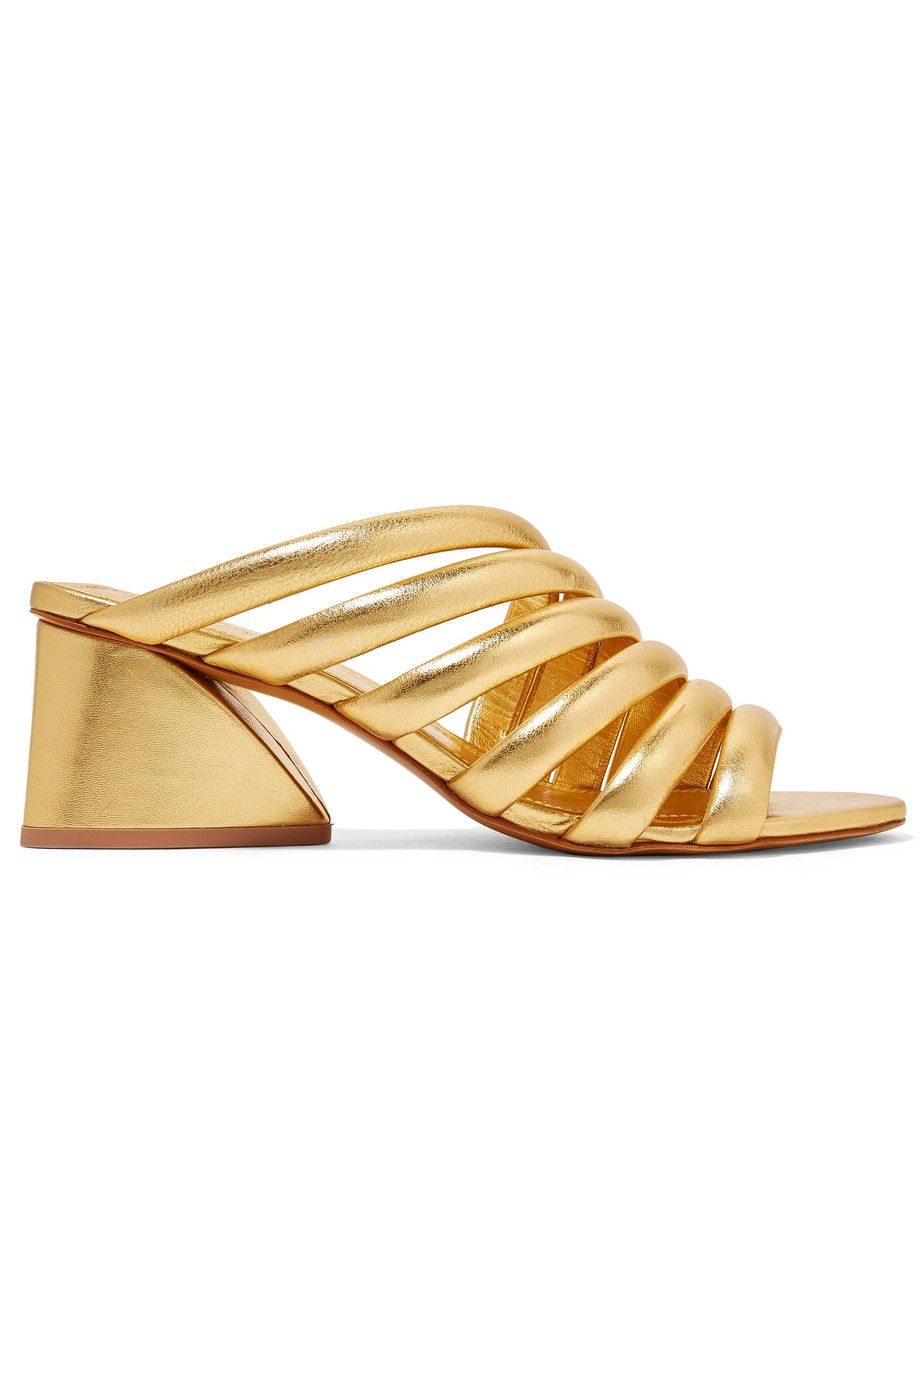 """Izzie Leather Mules Mercedes Castillo net-a-porter.com $210.00 SHOP NOW """"Summer work footwear is the hardest thing to find—you want to be naked as hell to battle those high temps, but you still have to dress it up enough to be proper (and get to those happy hours after hours). I plan to wrap my feet in gold so that nobody will notice I'm generally trying to wear as little as possible.""""— Estelle Tang, Senior Culture Editor"""